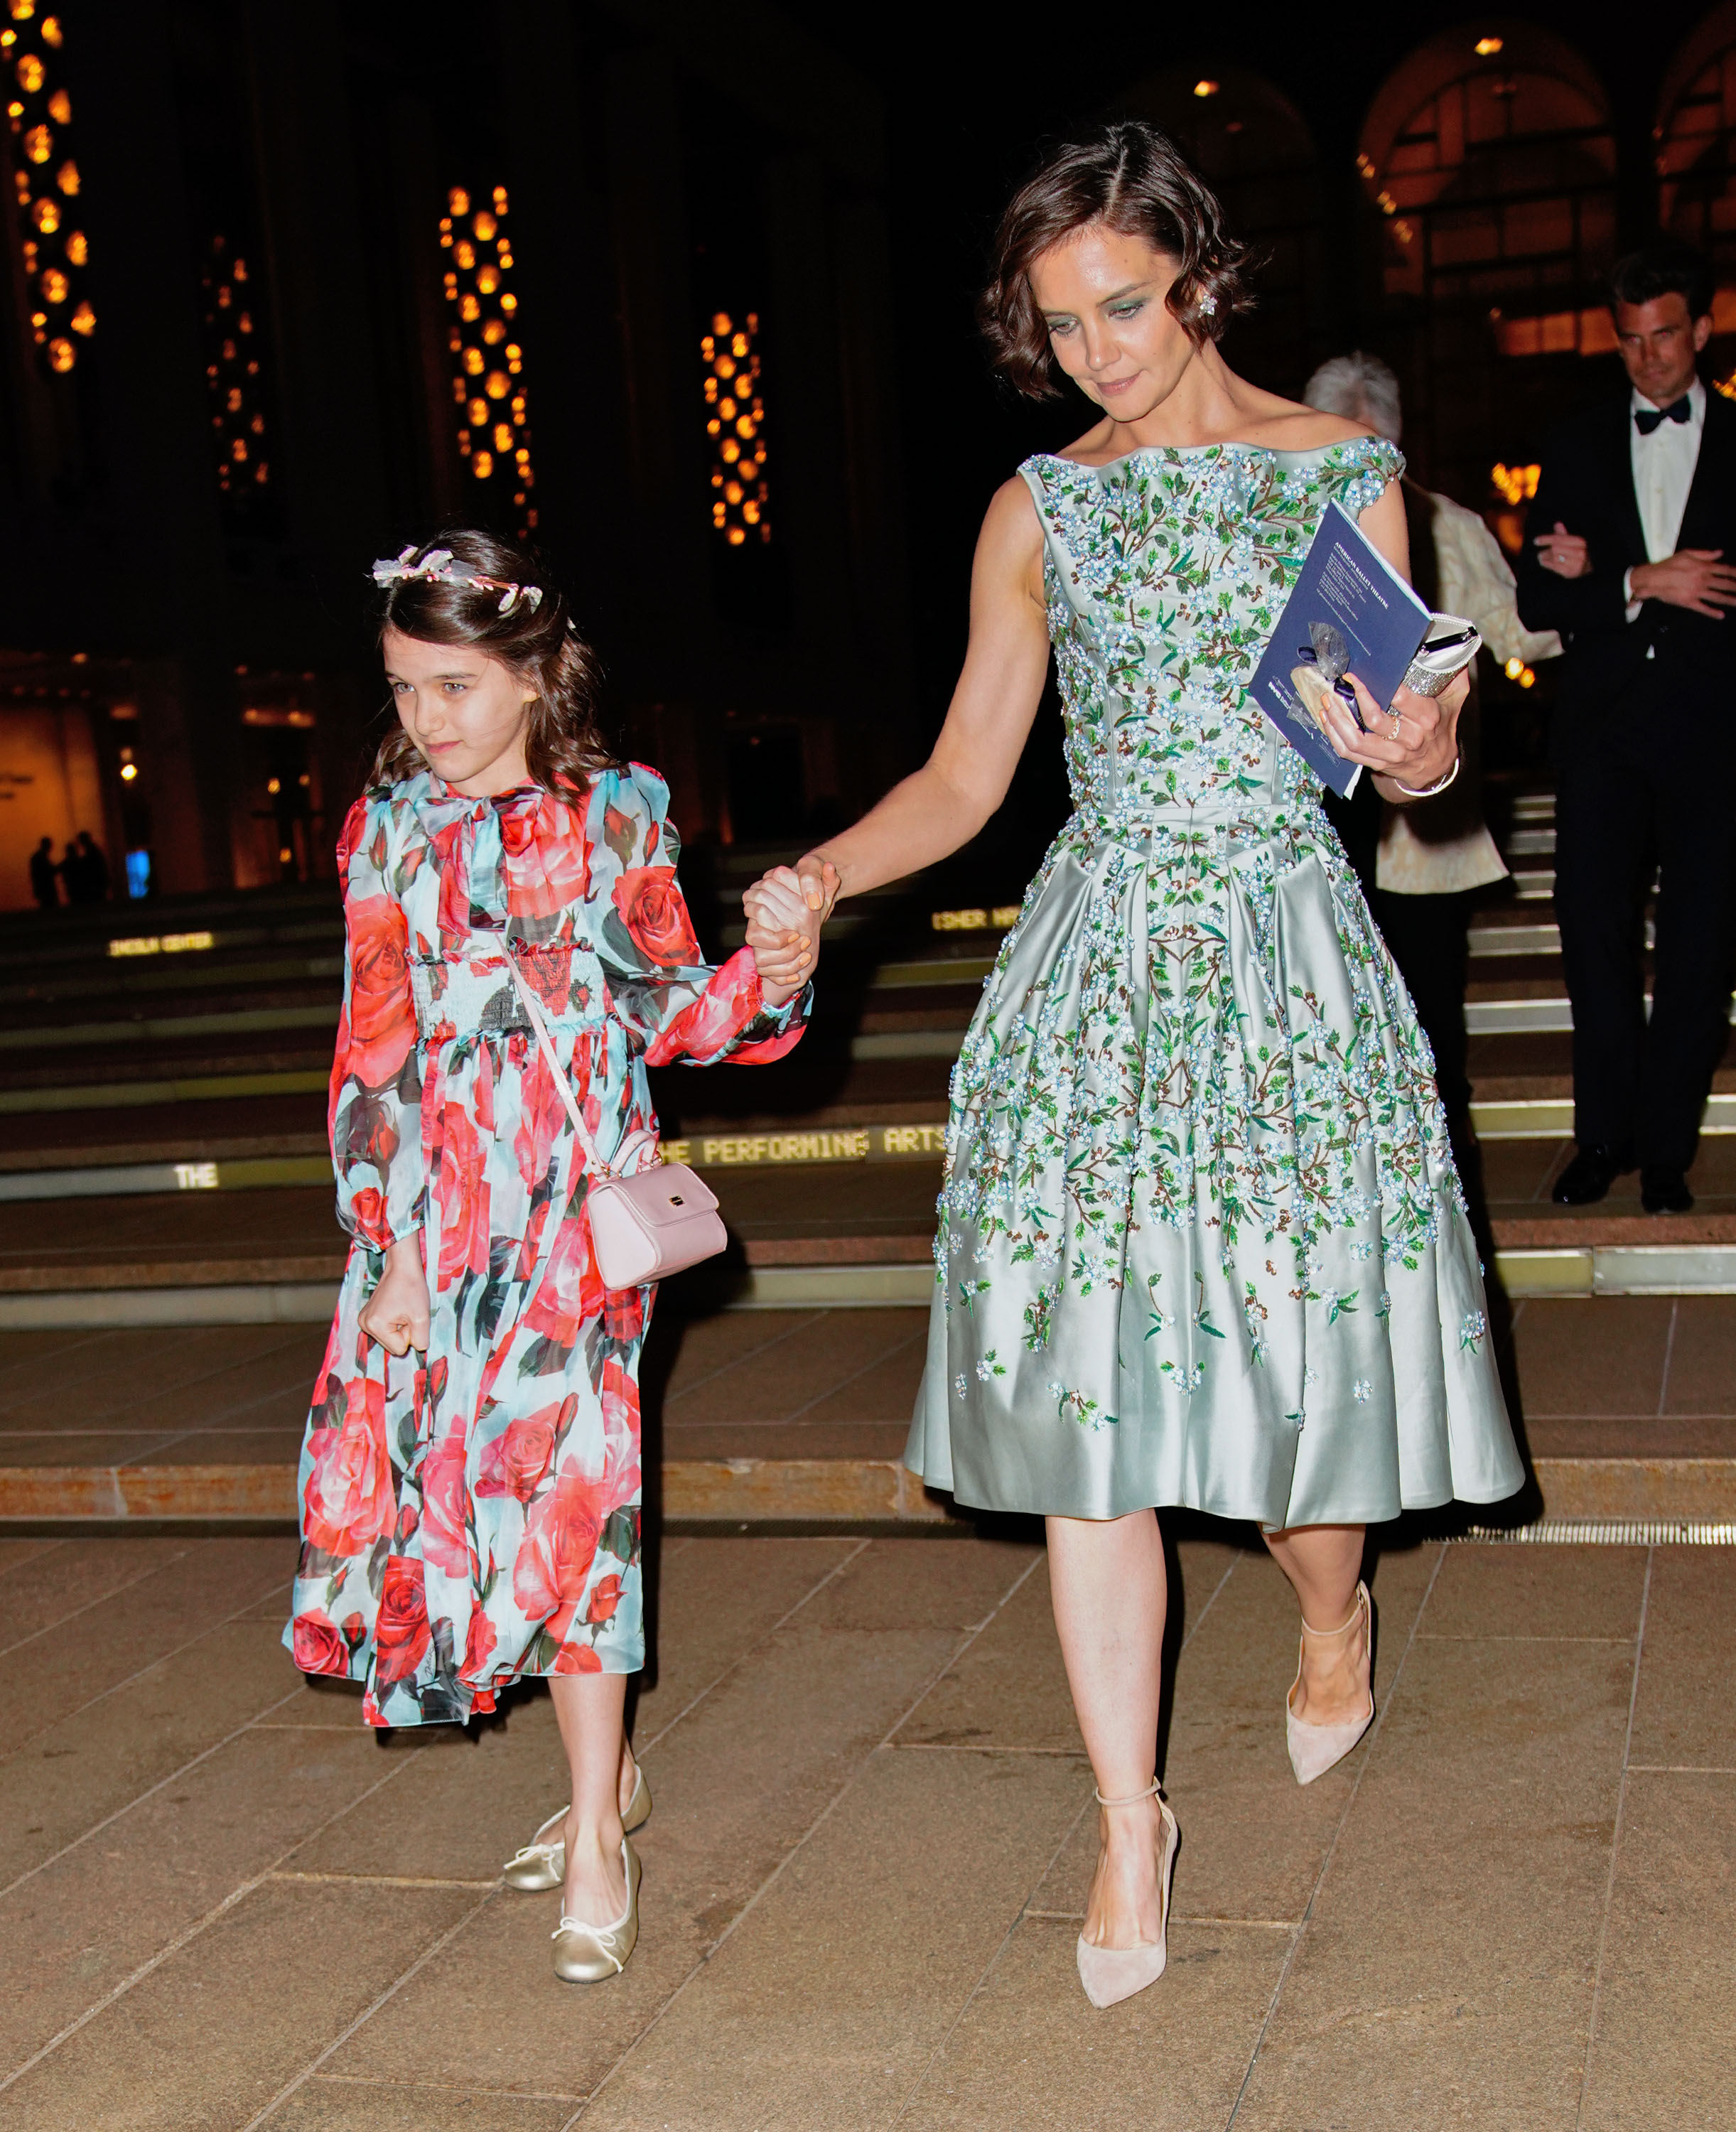 """With a fashion blog named in her honour, <em>Vanity Fair</em> covergirl status and a collection of custom-made Louboutins, Suri Cruise is the reigning queen of fashionable Hollywood offspring.<br /> <br /> So, it comes as no surprise that the 12-year-old daughter of Tom Cruise and Katie Holmes chose to make her debut at the Spring Gala for American Ballet Theatre in New York City, clad in a $1,577 Dolce & Gabbana dress.<br /> <br /> The price point may not be your average 2-for-1 buy at Pumpkin Patch, but it seems relatively tame in comparison to <a href=""""http://https://style.nine.com.au/2017/03/07/08/53/beyonce-blue-ivy-gucci-beauty-beast"""" target=""""_blank"""">Beyonce's daughterBlue Ivy's $32,000 Gucci dress inclinations.</a><br /> <br /> But the tween's best accessory for the night? Her mother.<br /> <br /> Holmes complemented her daughter's floral look with an equally show-stopping flowery gown courtesy of designer, Zac Posen.<br /> <br /> From their matching raven-coloured hair, gamine smiles and penchant for pastels and prints, the mother-daughter duo showed how to make a twinning sartorial statement.<br /> <br /> Click through to see more of Katie, Suri and other famous mother-daughter duos in our celebrity twinning gallery.<br />"""